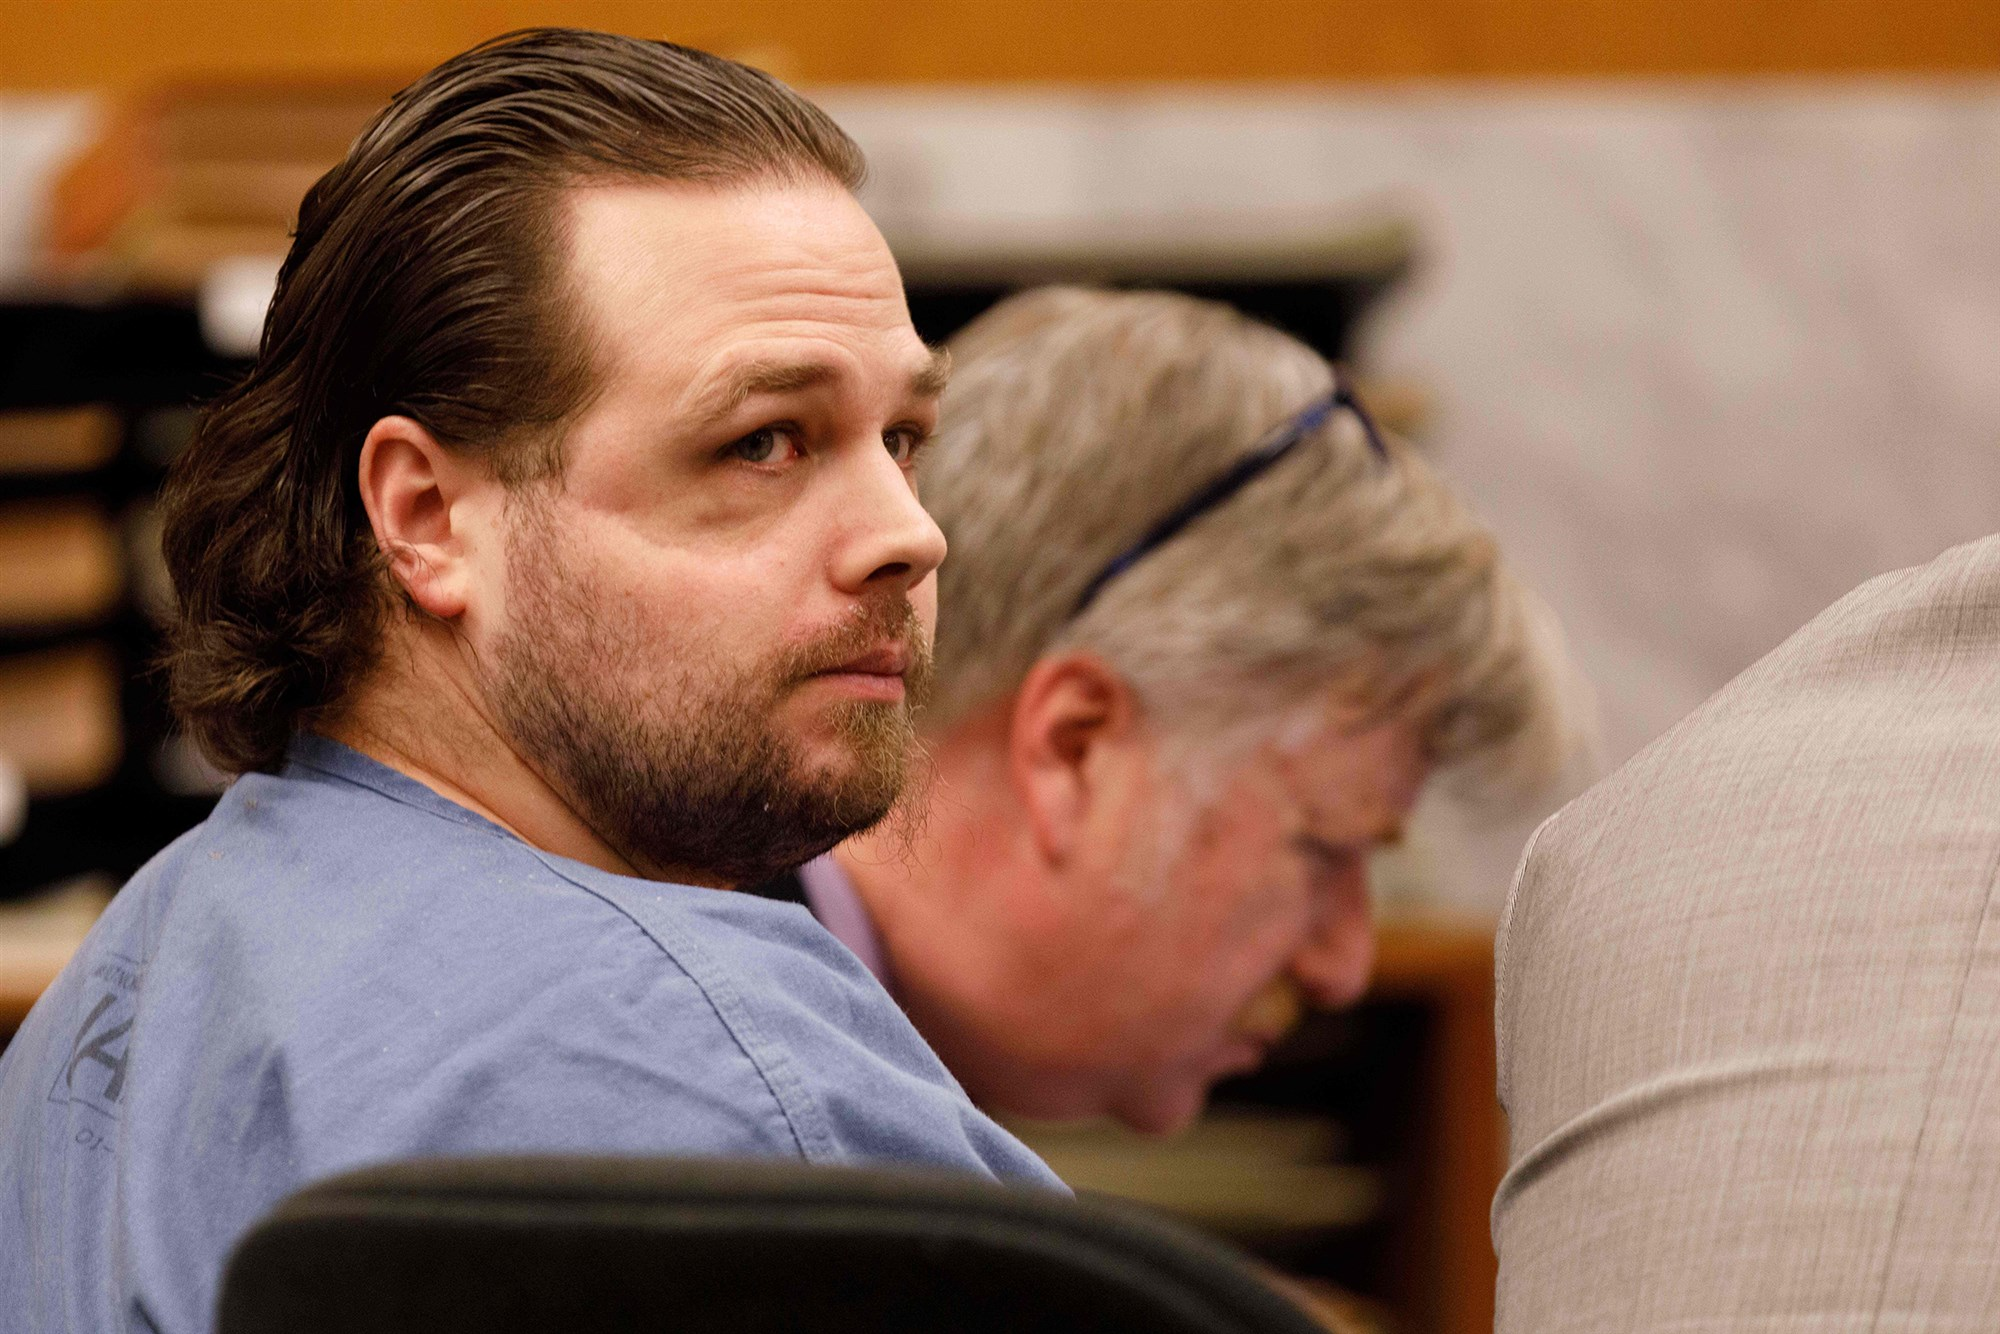 Portland Man Accused of Killing 2 During Hate-Filled Rant Guilty of 1st-Degree Murder